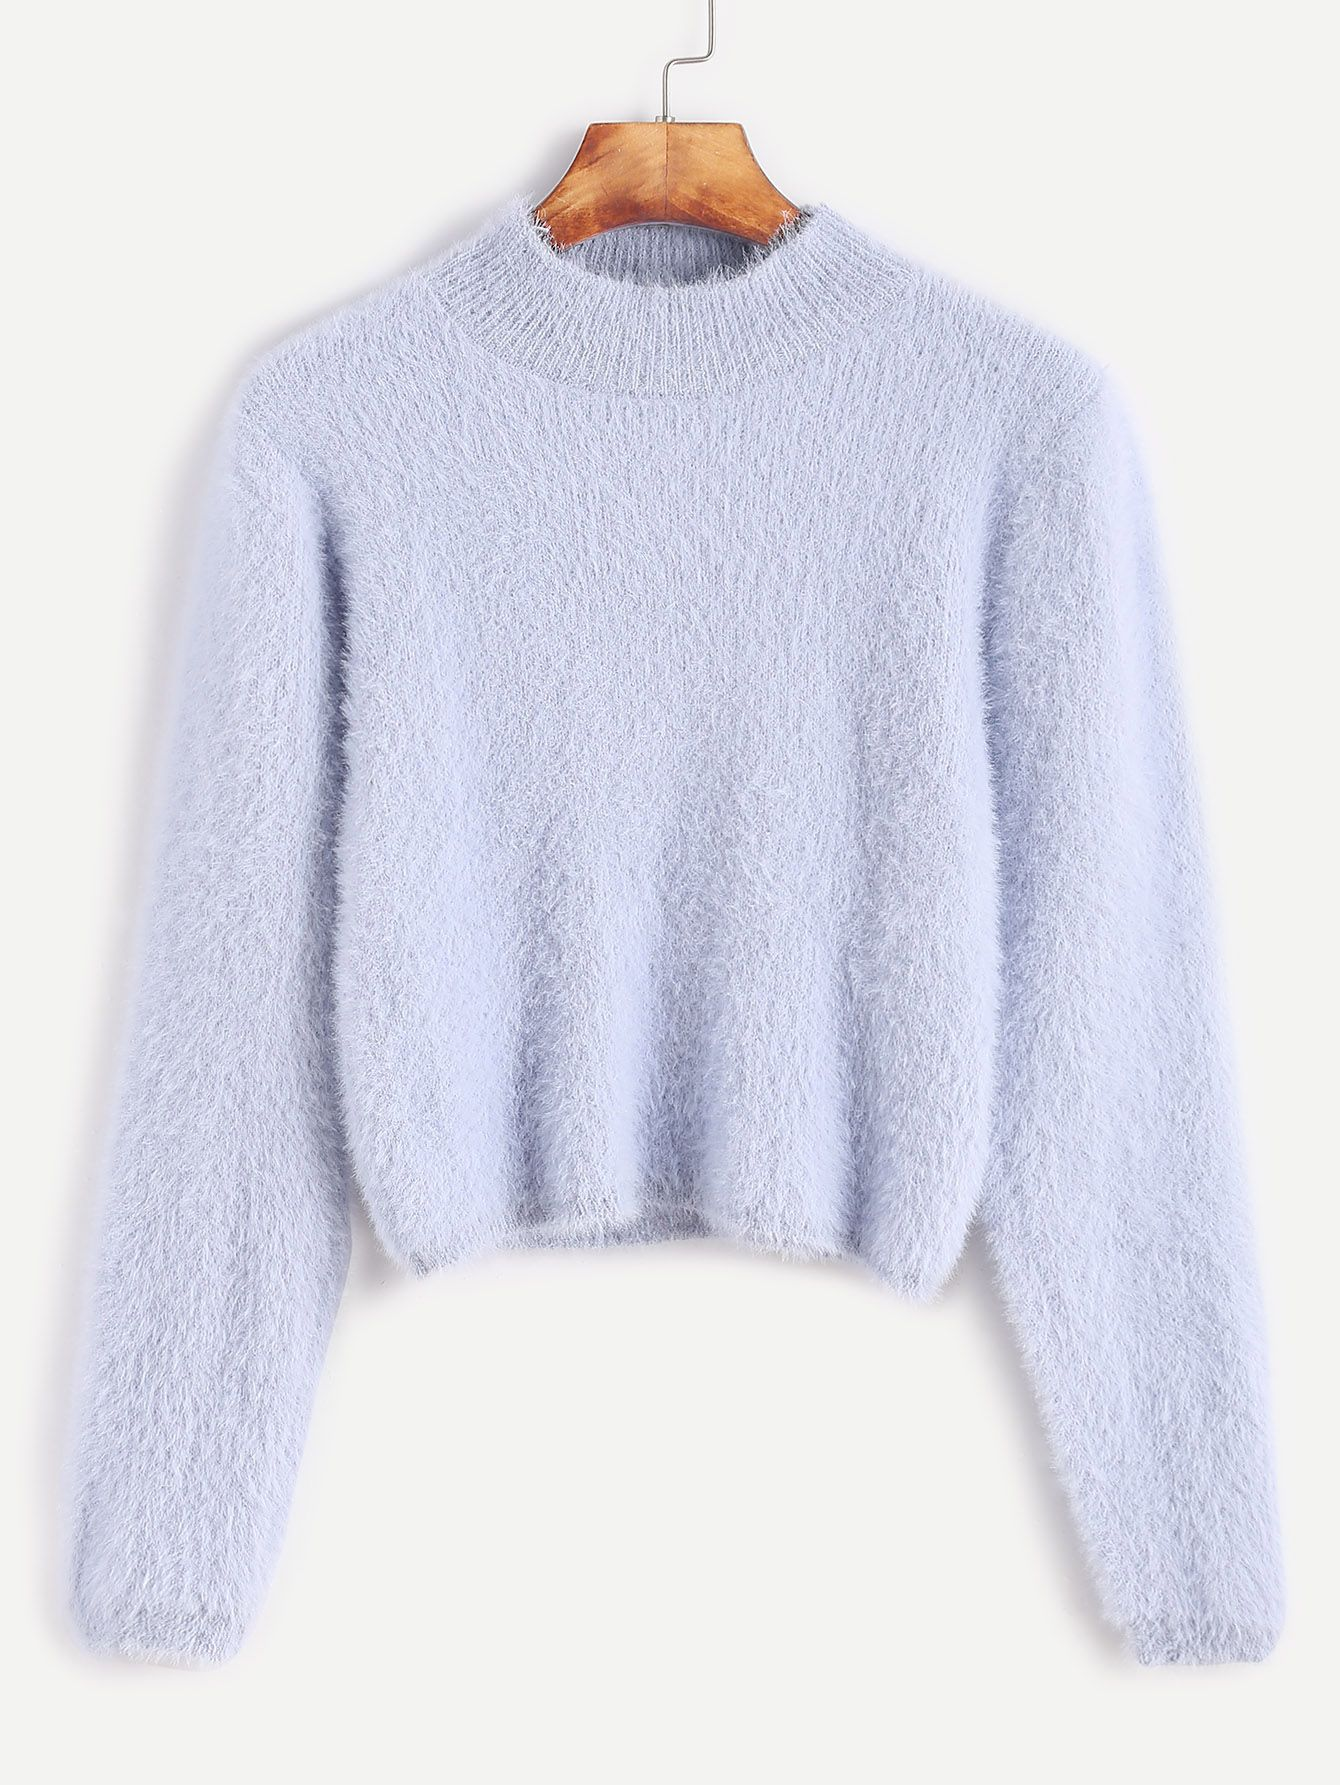 Pale Blue Crew Neck Crop Fuzzy Sweater | Shopping, Clothes and ...